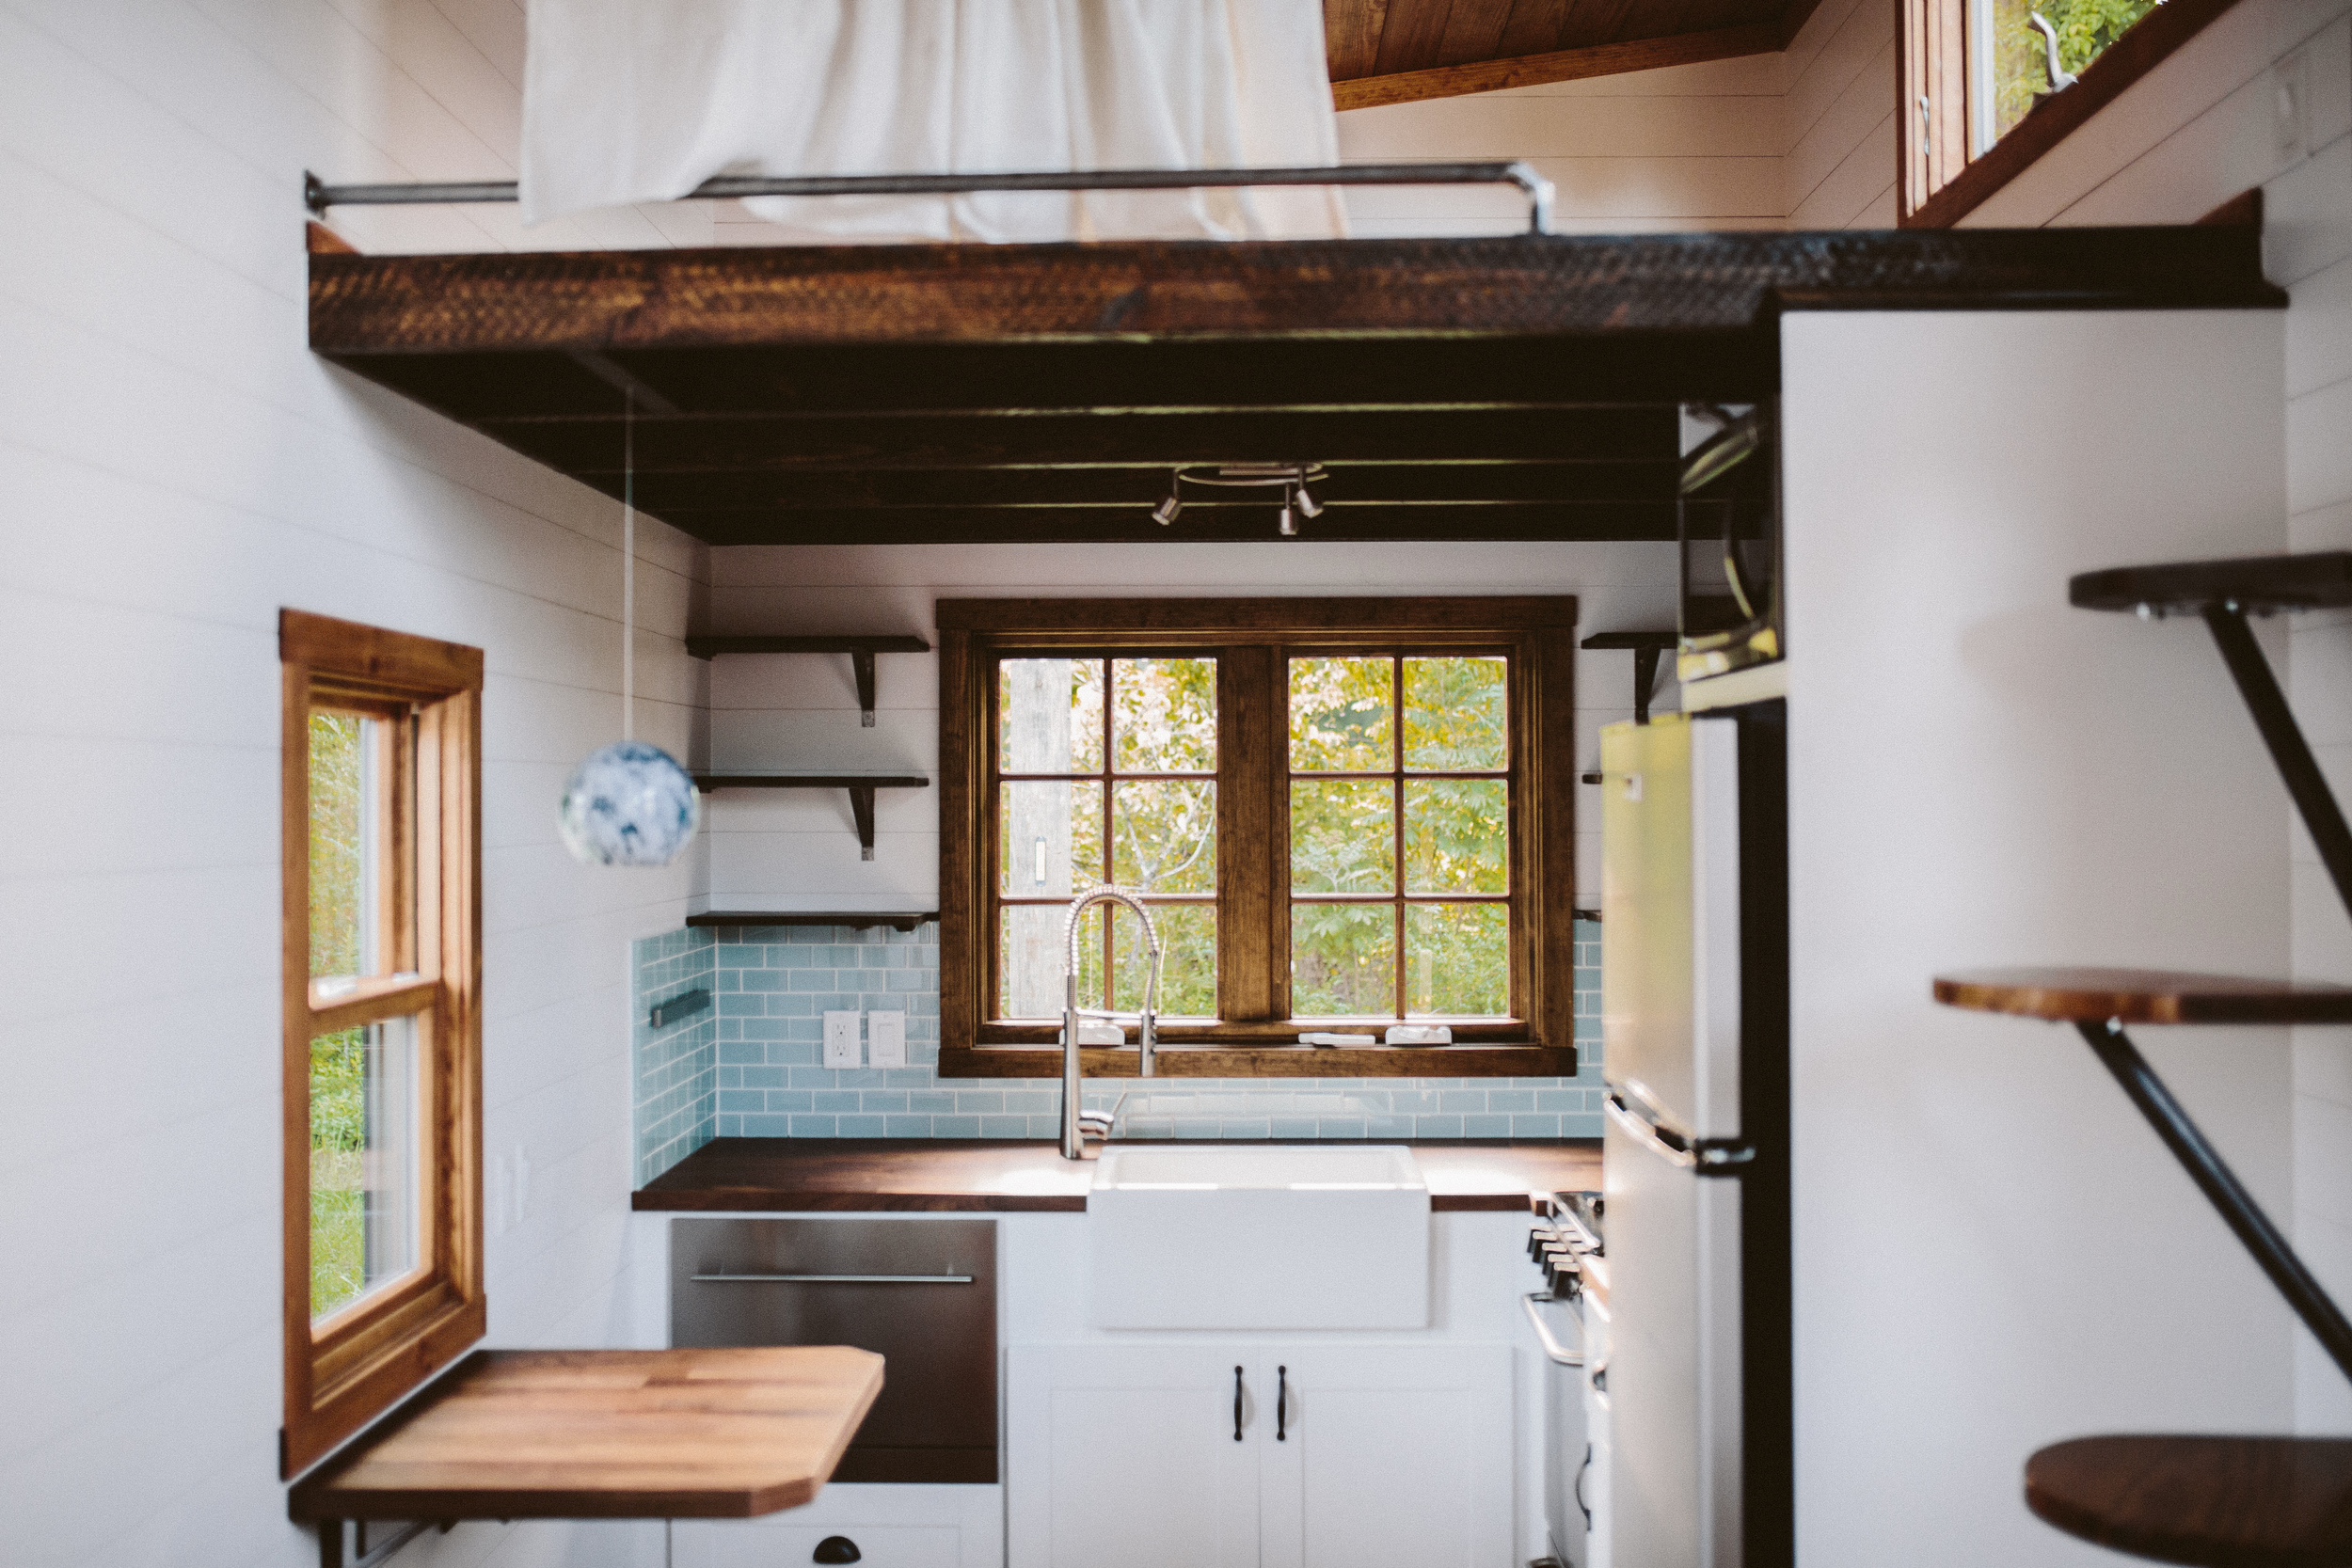 The Mayflower - Folding table, farmhouse sink, butcher block counters, custom welded open shelving, seaglass subway tile, oven, drawer dishwasher, and french casement window